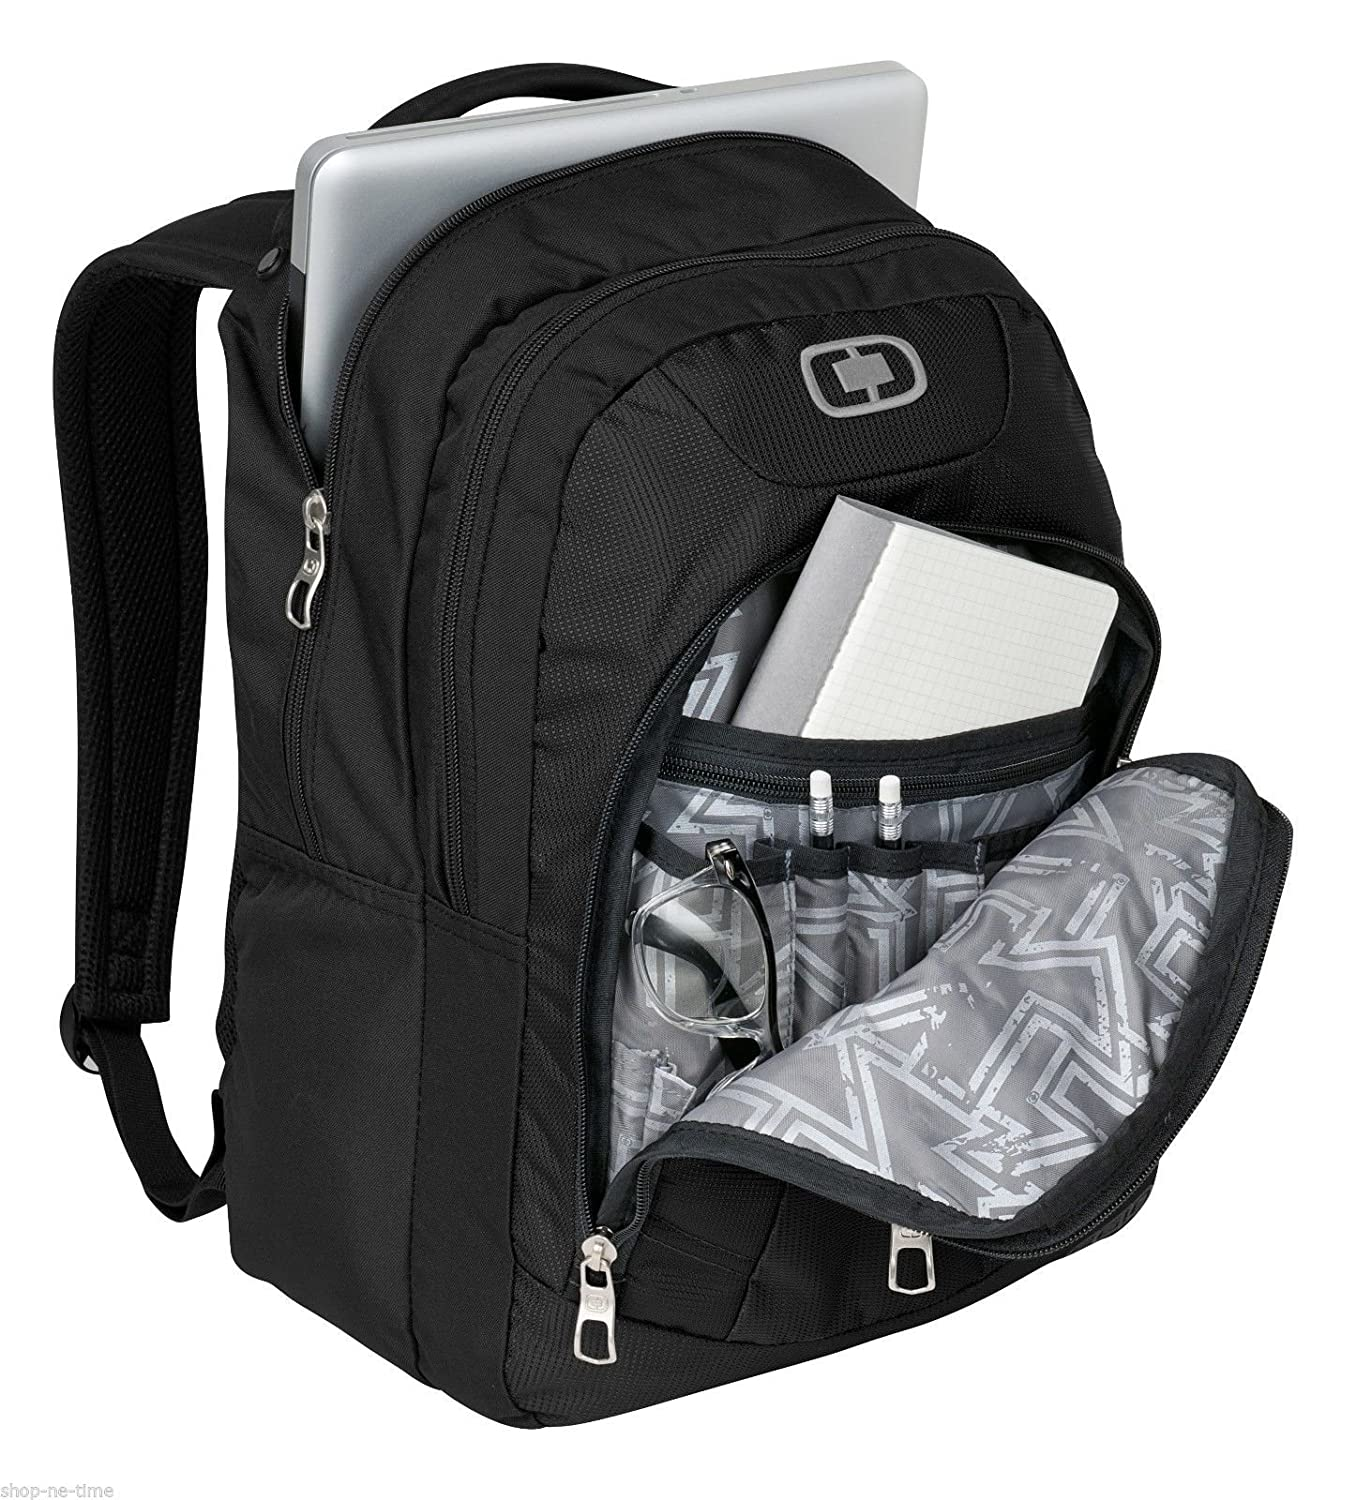 Amazon.com: OGIO 411063 - Black/Silver Computer Laptop Colton Backpack, Black/Silver: Sports & Outdoors